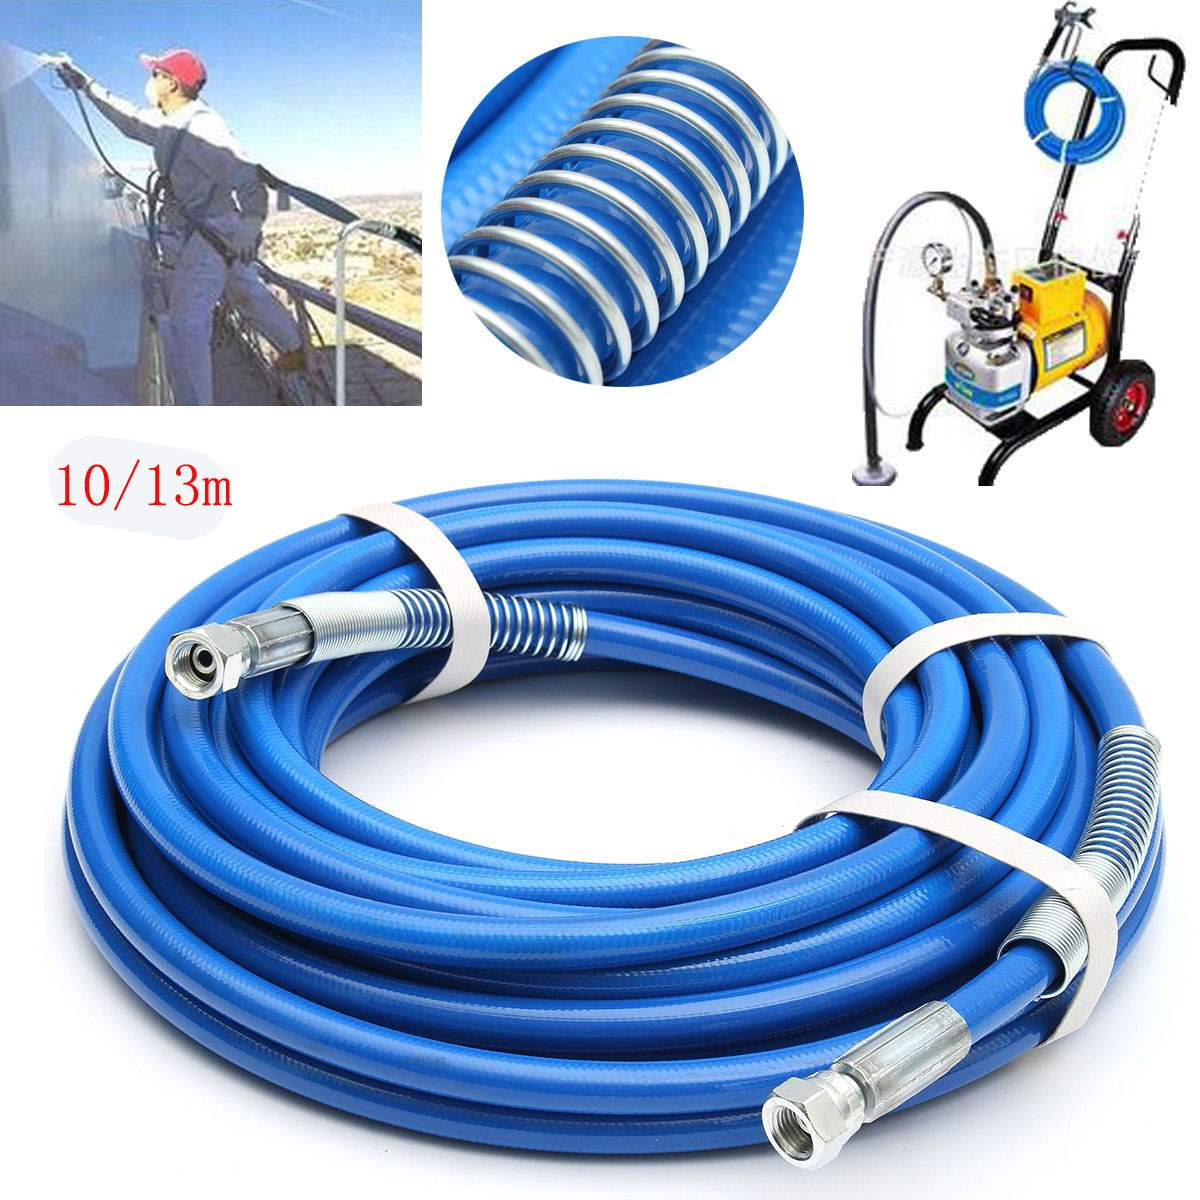 цена на 13m 5000psi High Pressure Pipe Airless Paint Hose 50' x 1/4 Sprayer Airless Paint Hose For Spray Guns Sprayer Water